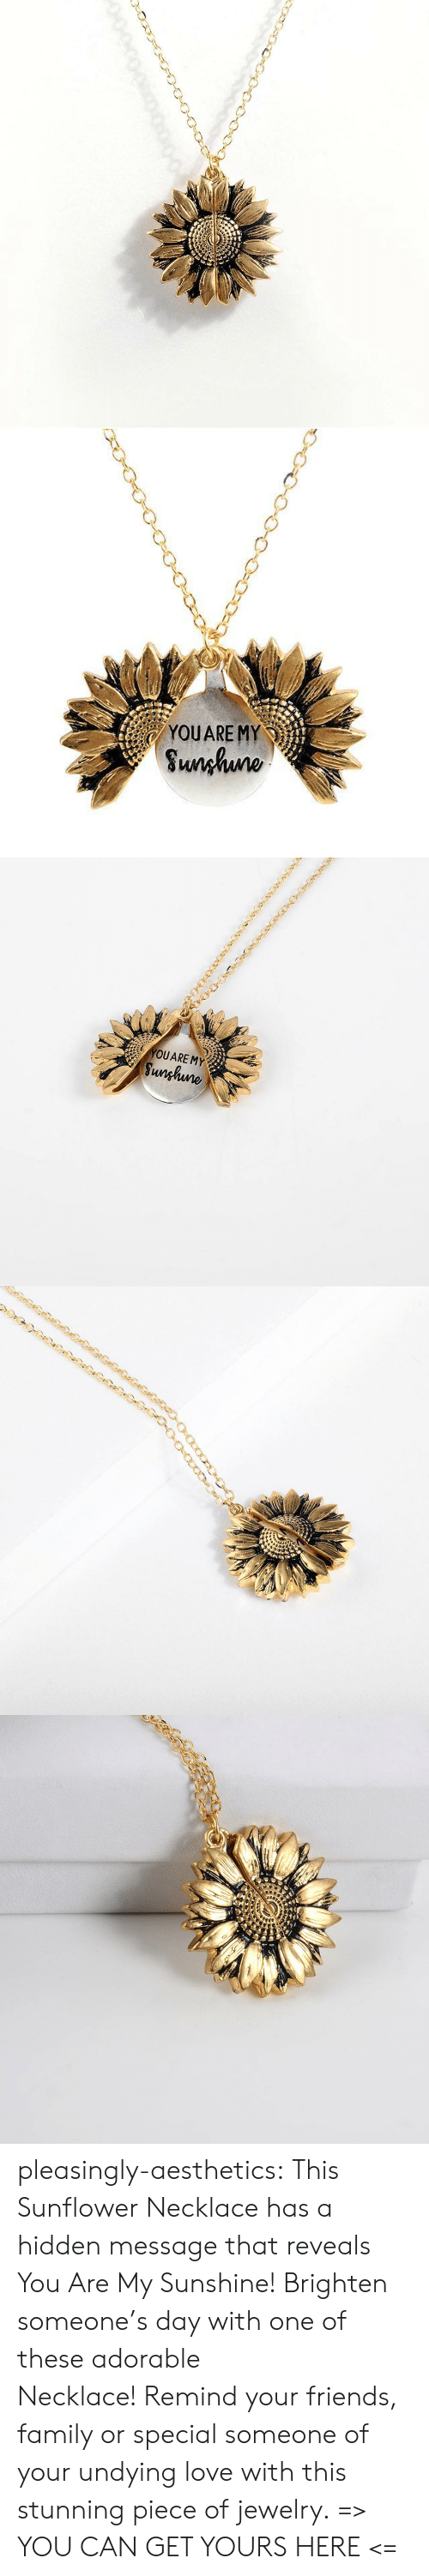 remind: YOUARE MY  Sunhuno   YOUARE MY  Sunghune pleasingly-aesthetics: This Sunflower Necklace has a hidden message that reveals You Are My Sunshine! Brighten someone's day with one of these adorable Necklace! Remind your friends, family or special someone of your undying love with this stunning piece of jewelry. => YOU CAN GET YOURS HERE <=